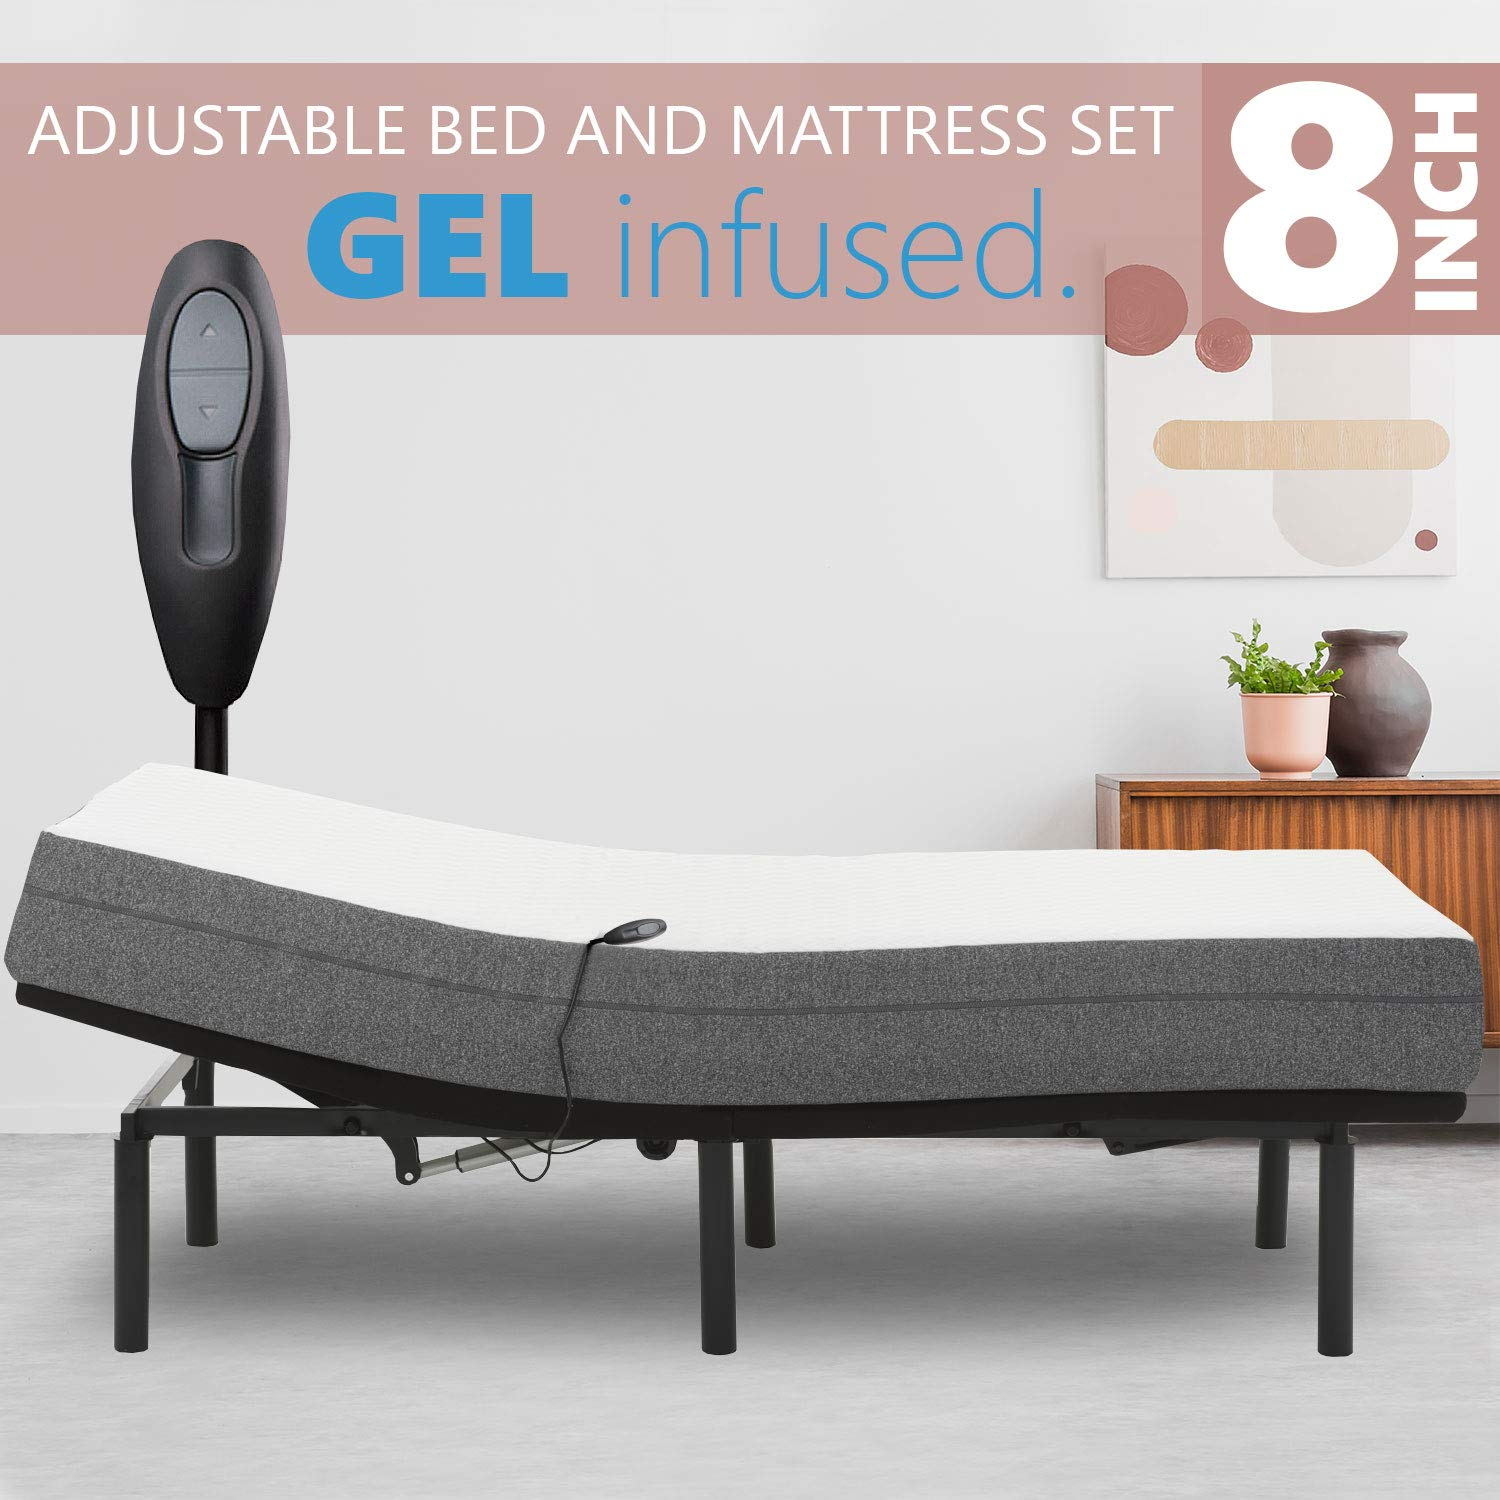 Blissful Nights Adjustable Bed Frame with 8 Firm Gel Infused Memory Foam Mattress, Head Only Incline and Wired Remote No Tools Required Assembly Queen